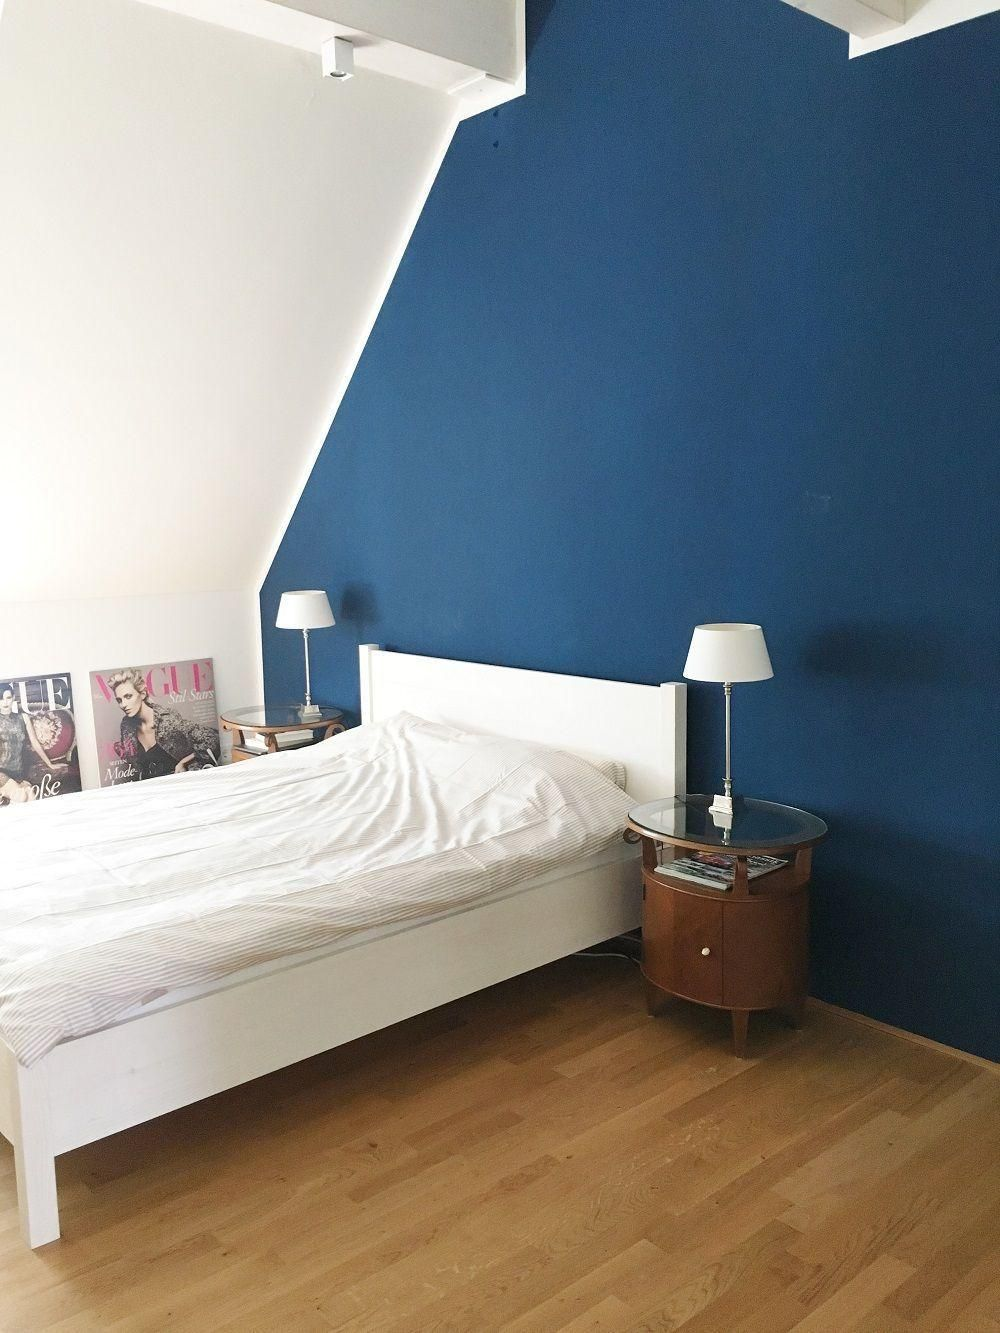 Fine Schlafzimmer Ideen Blau that you must know, You're in